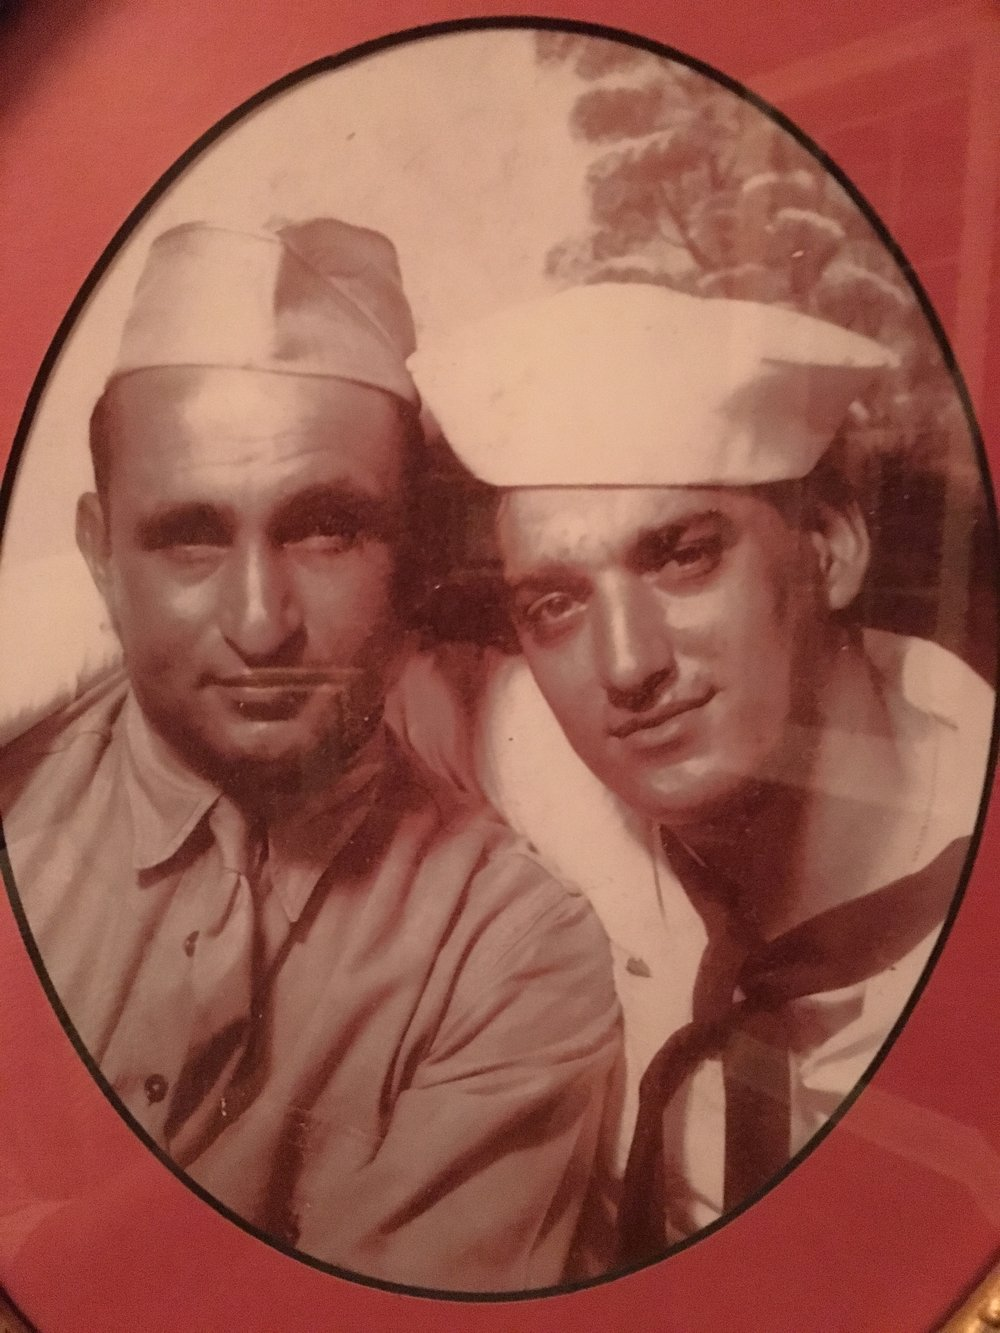 Tony and his brother Joe during WWII